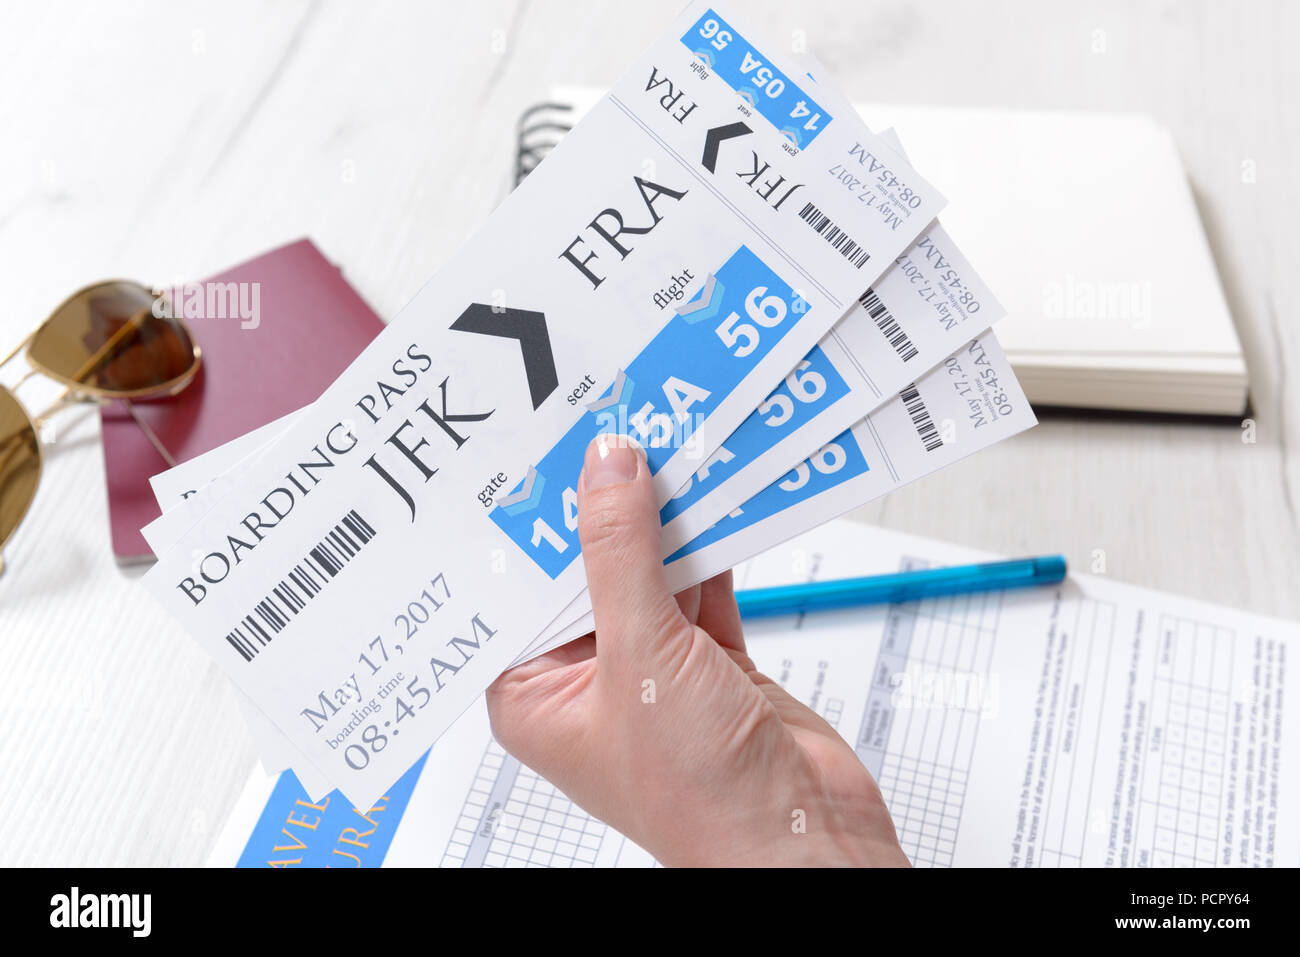 Airline boarding pass tickets in haand with travel insurance, passports, sunglasses, pen and notebook as a concept of traveling - Stock Image